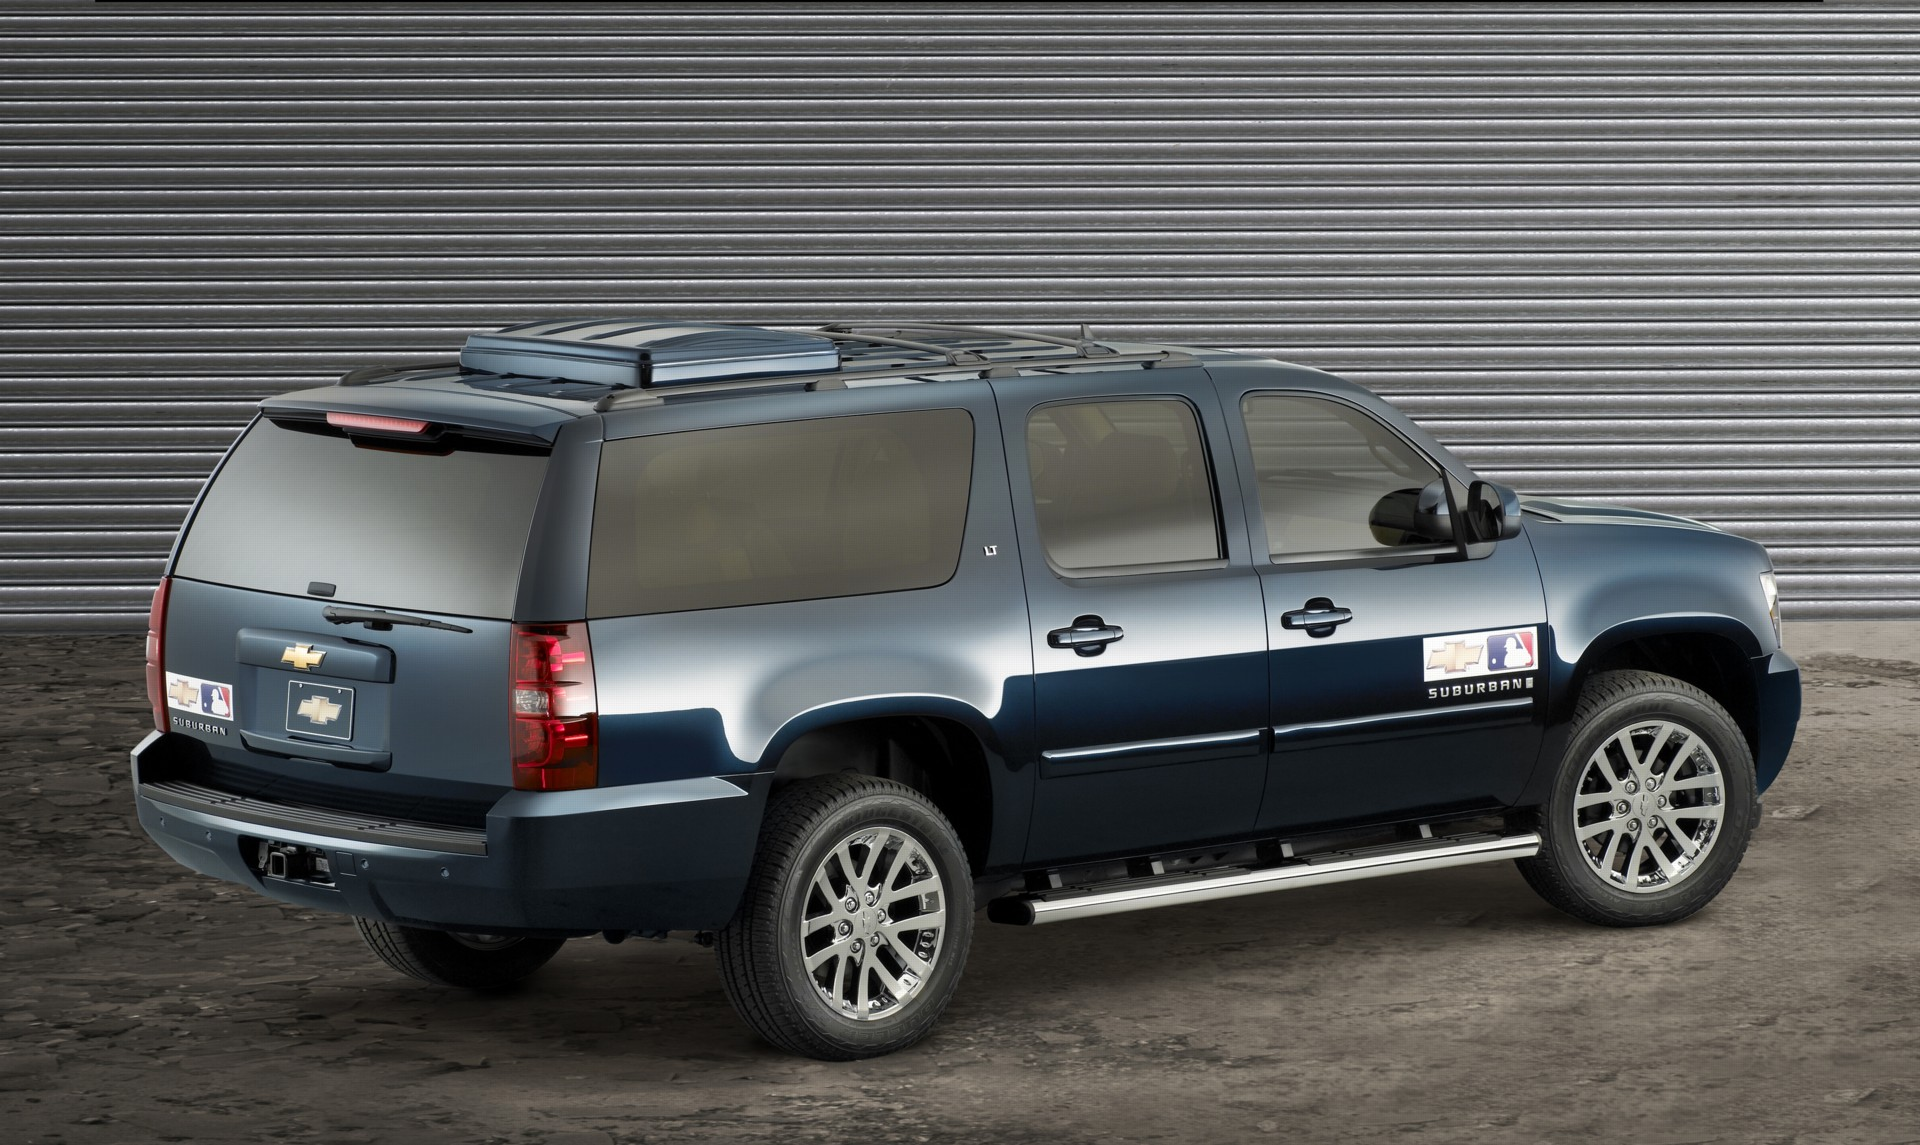 2006 Chevrolet Mlb Suburban Pictures History Value